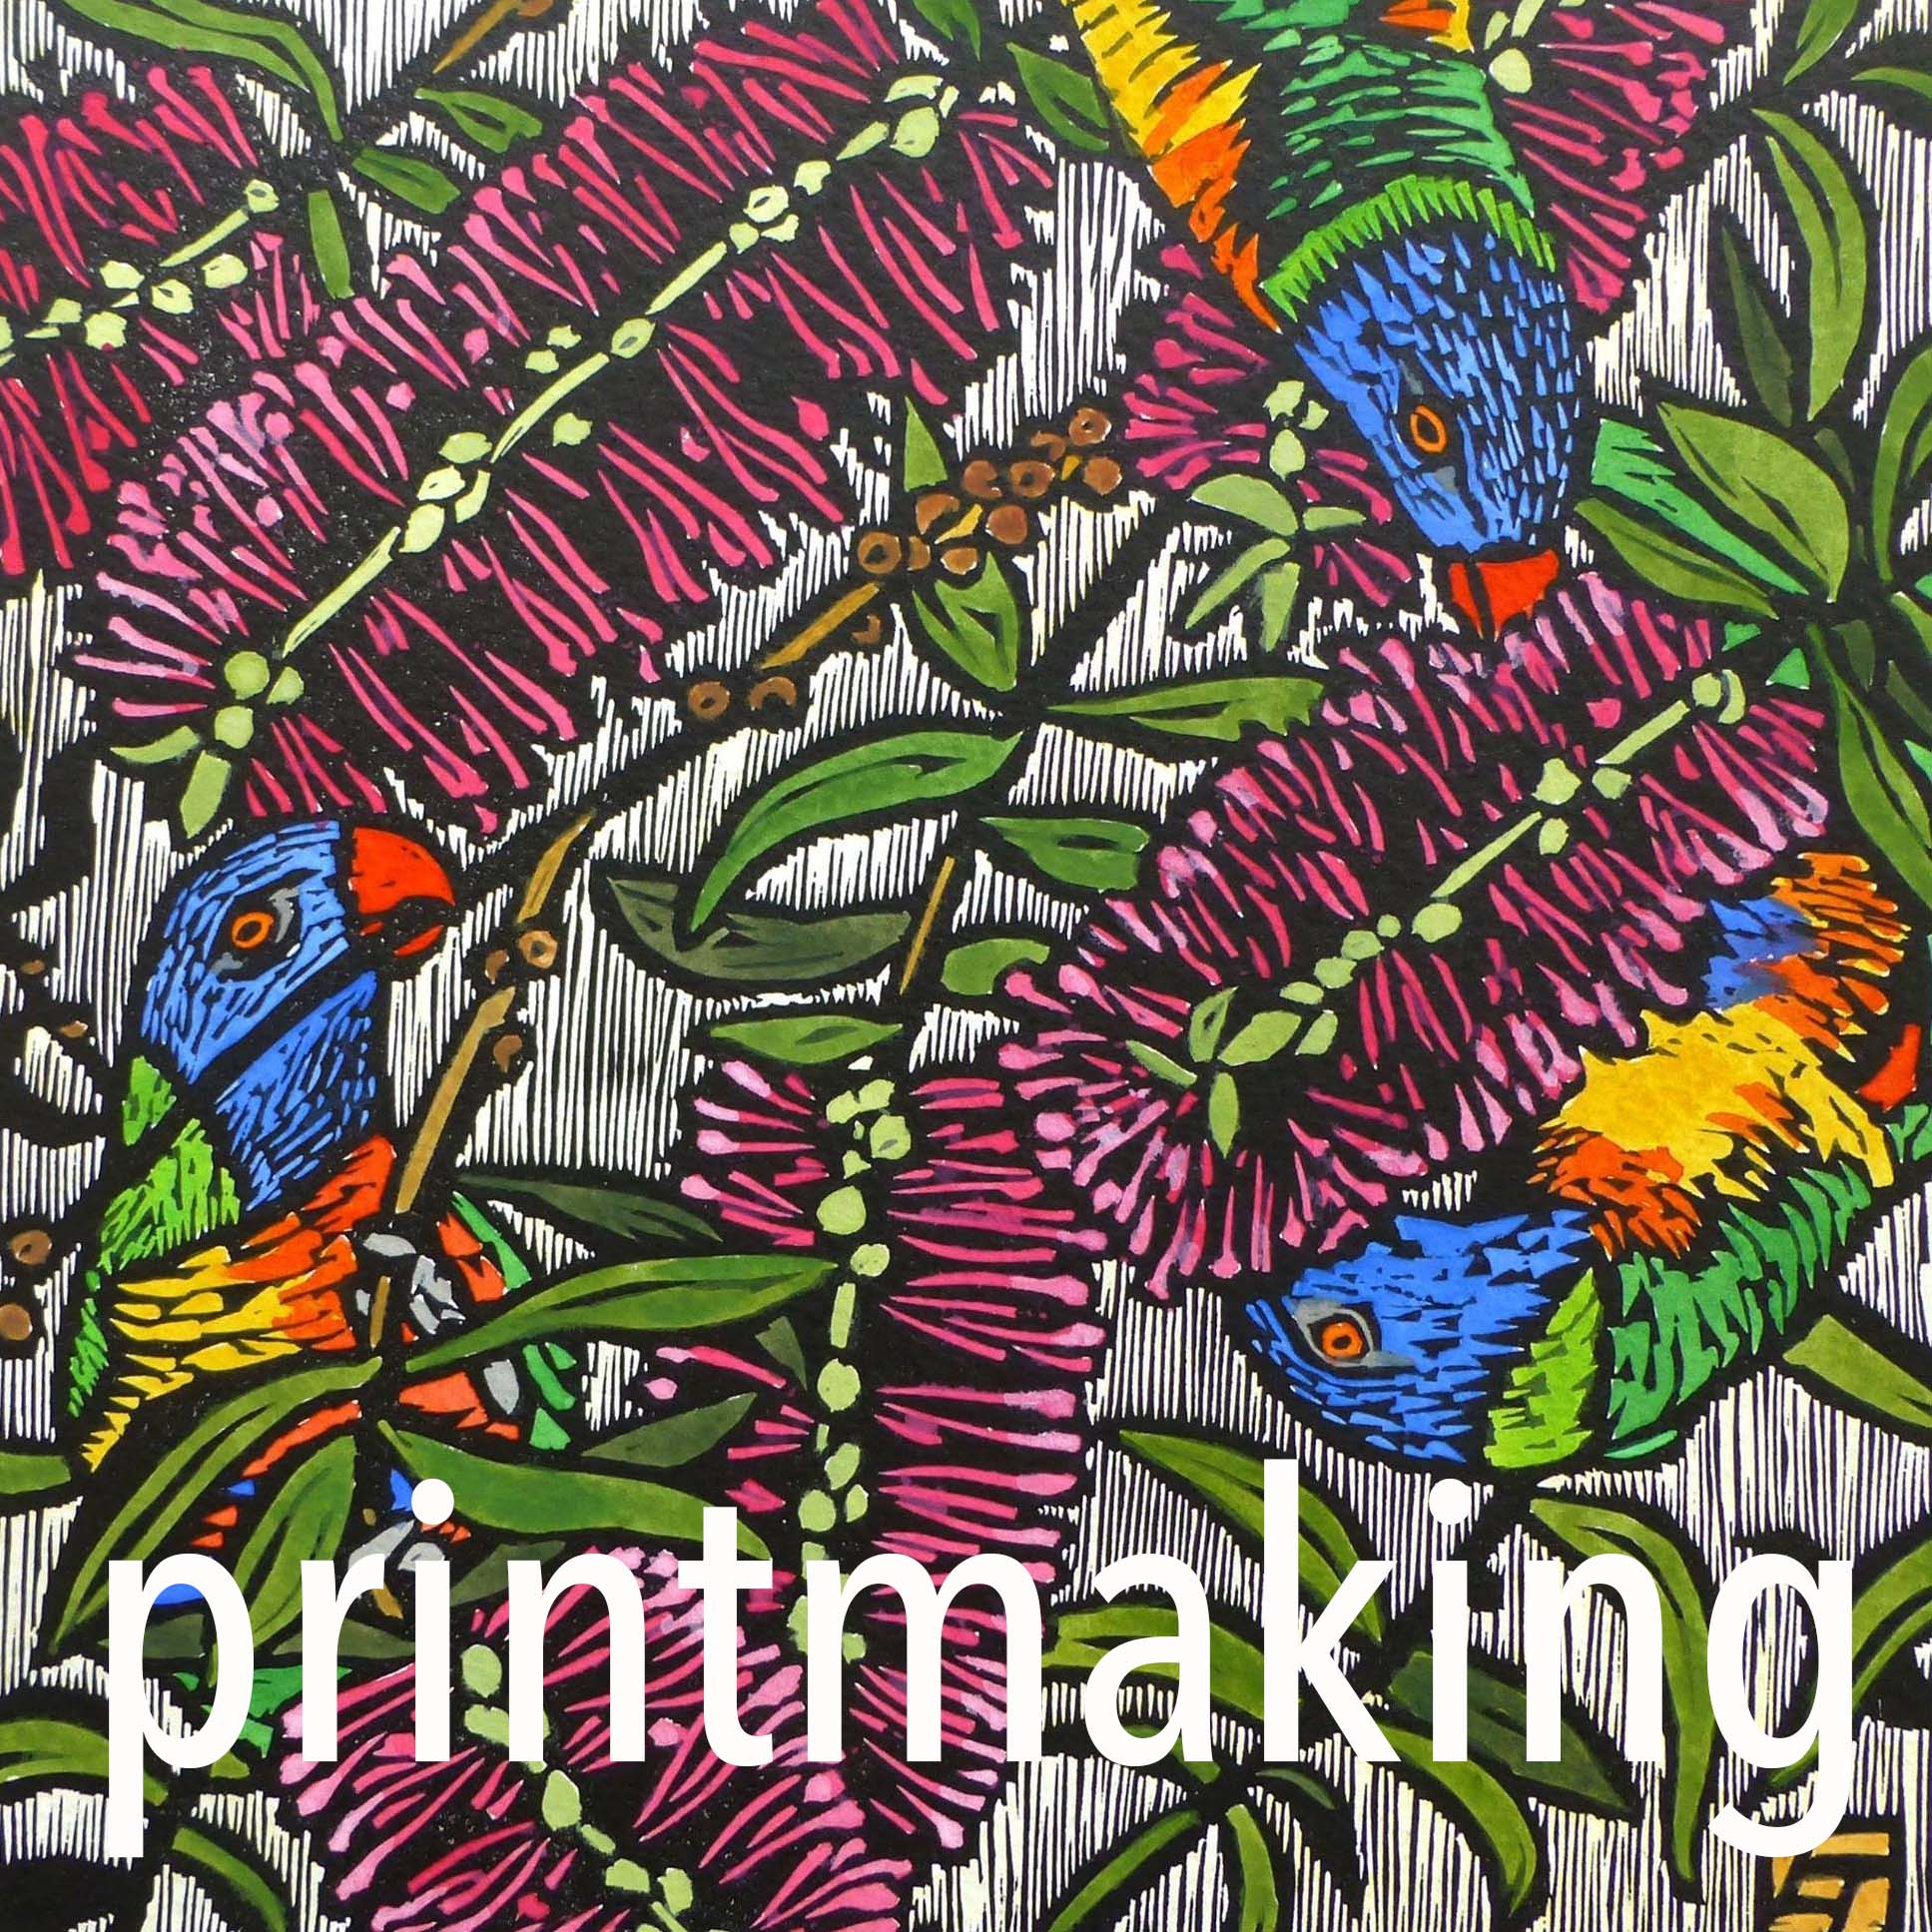 Lino print workshop with Lucy Timbell